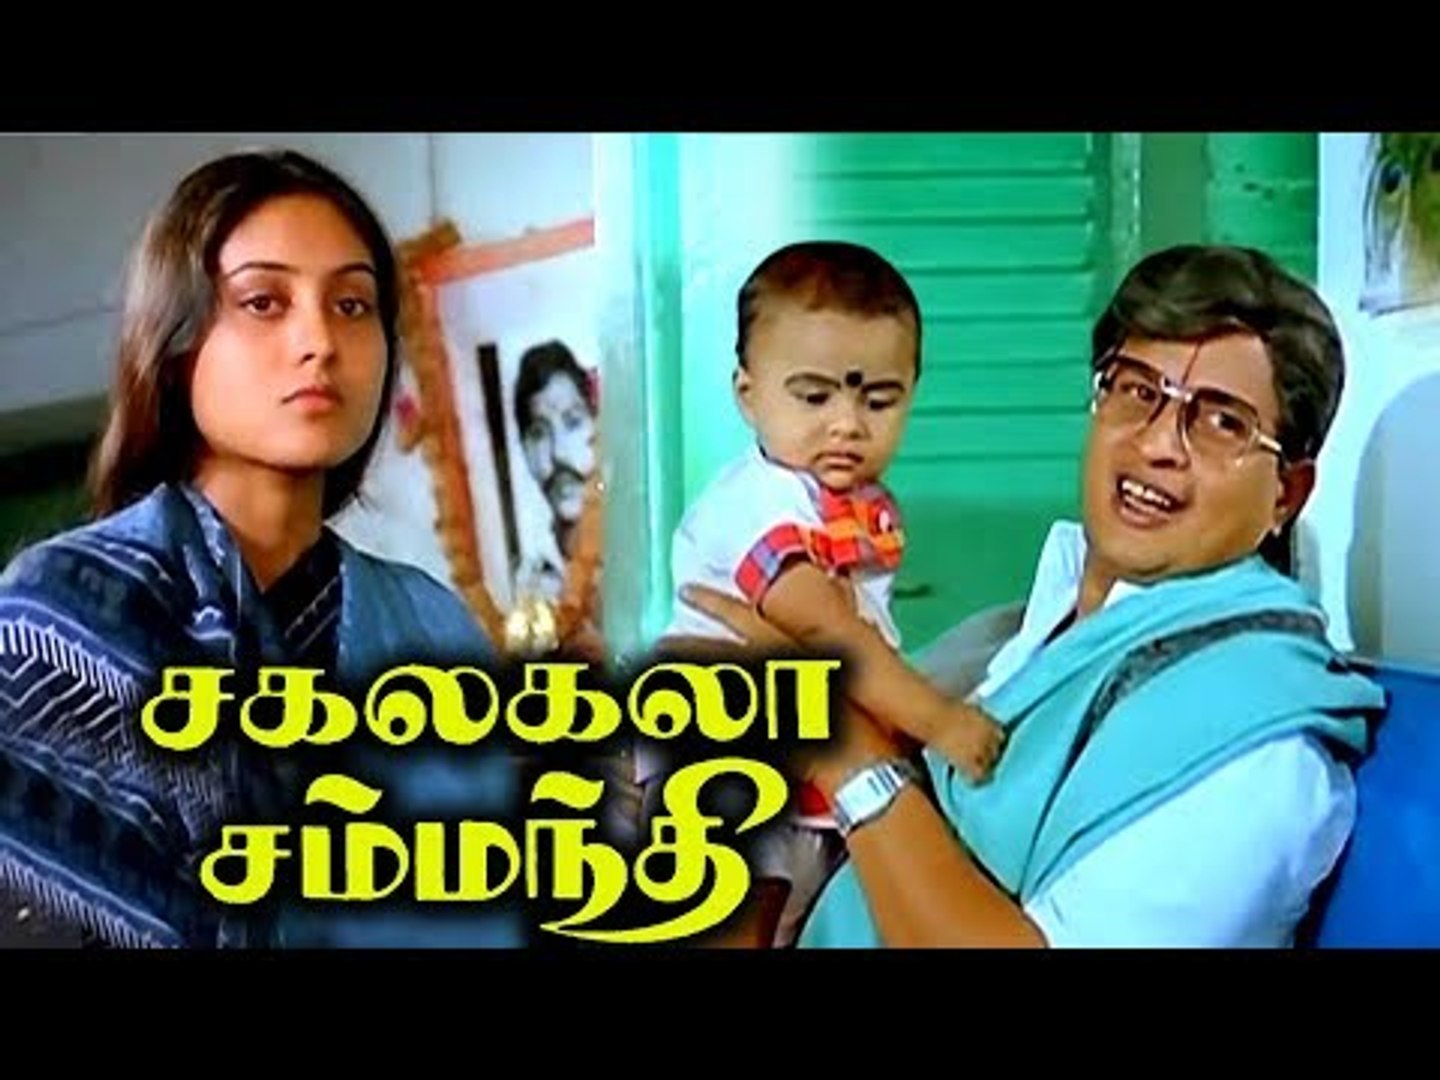 Greenbelt Bowl ⁓ Try These Thai Maaman Tamil Movie Download